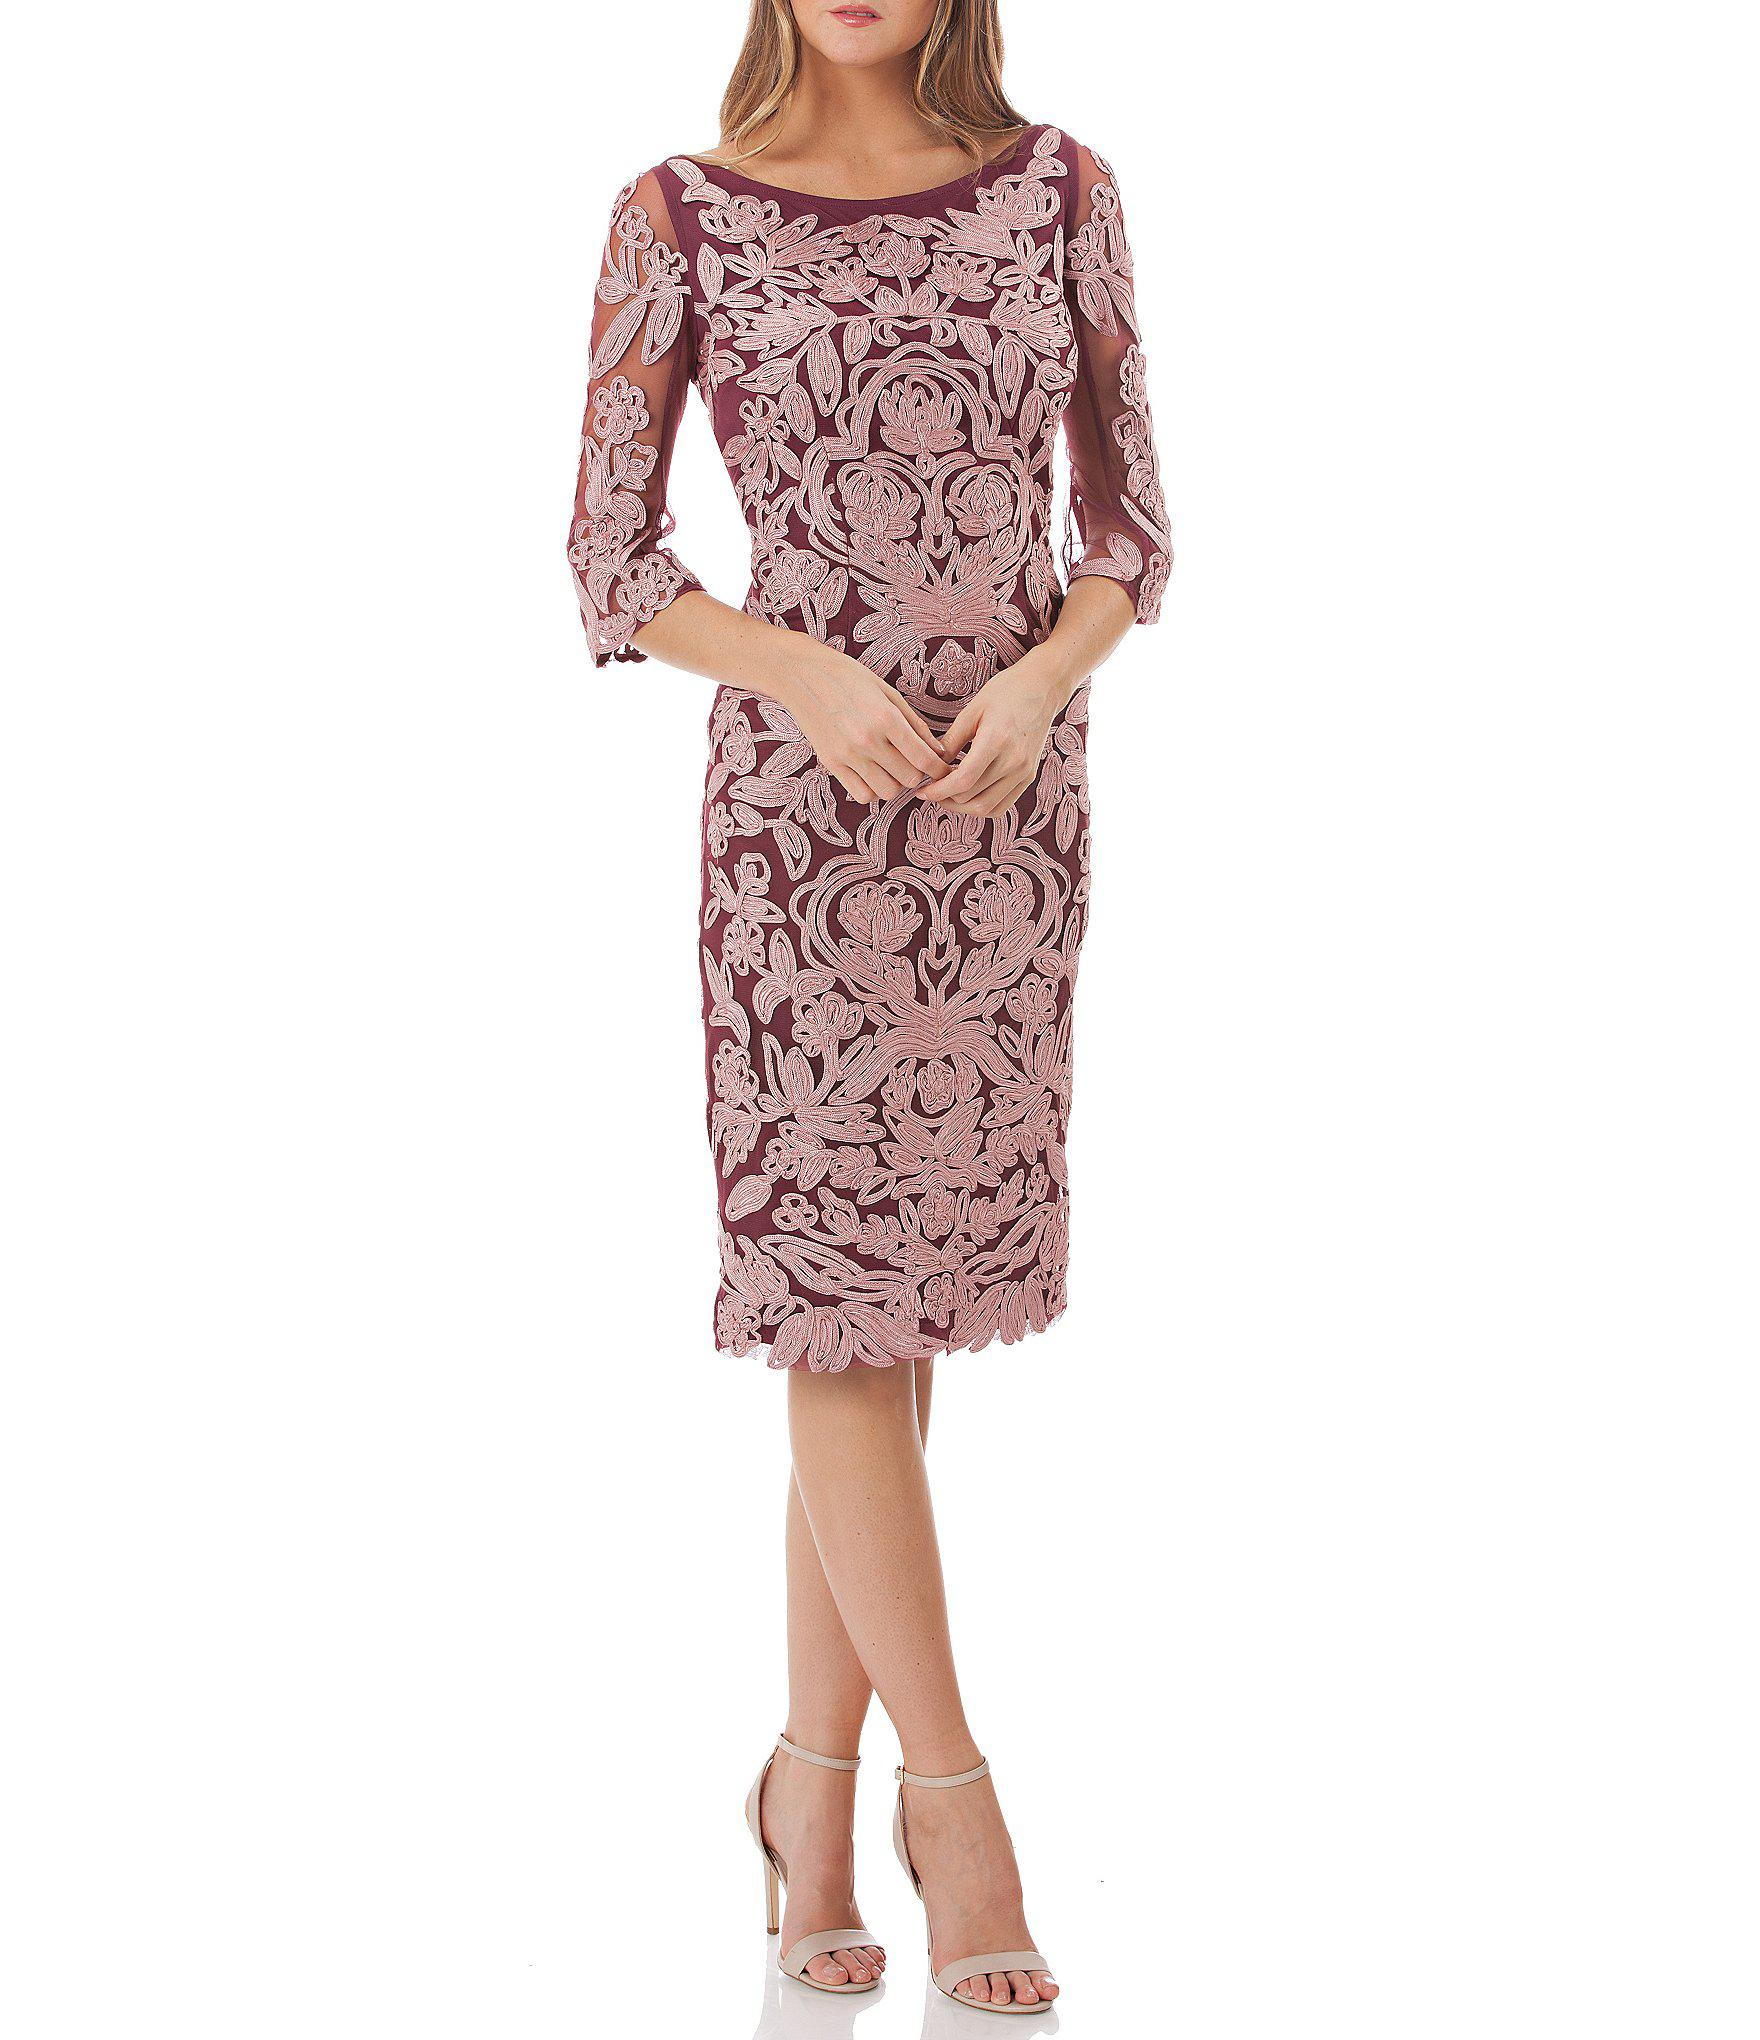 bbe8a04a8dba Lyst - JS Collections Embroidered Soutache Cocktail Dress